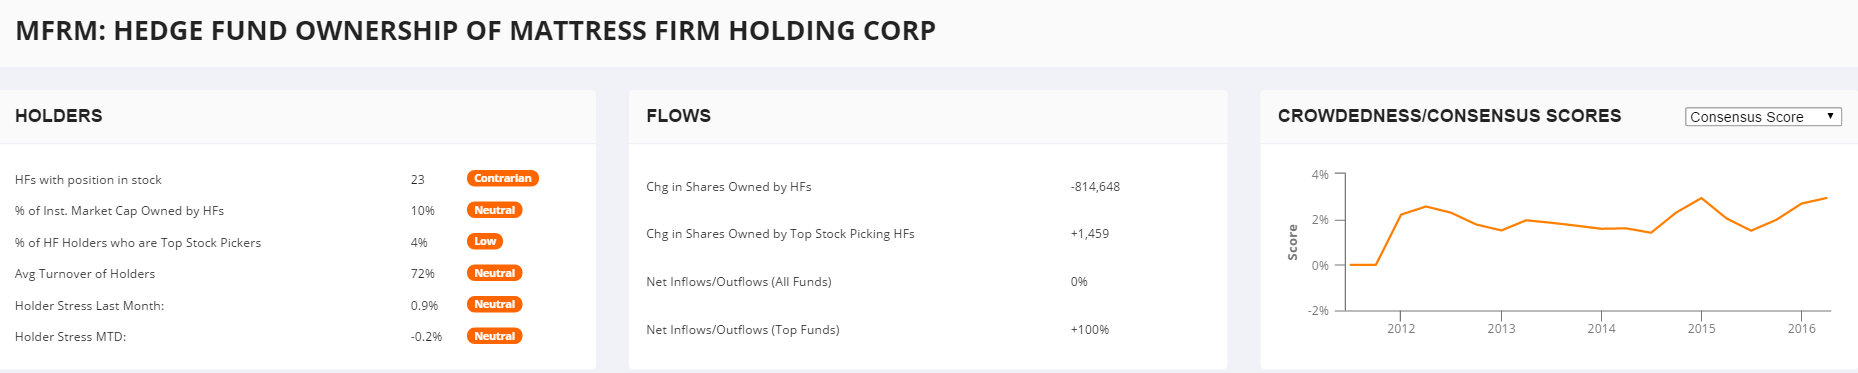 MFRM-Hedge-Fund-Holdings